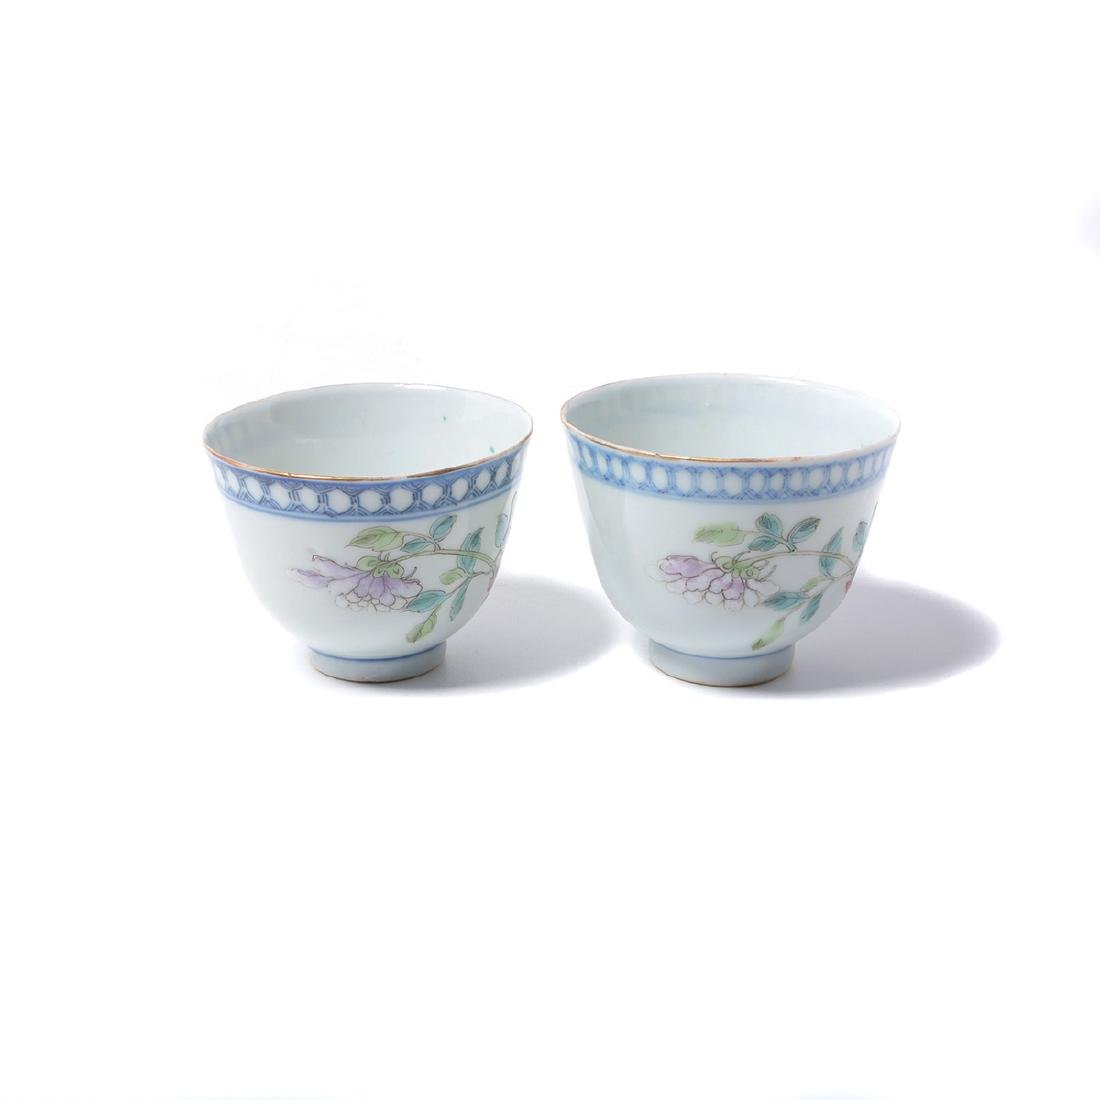 Pr of Famille Rose Cups with Silver Lids & Stands, - 3